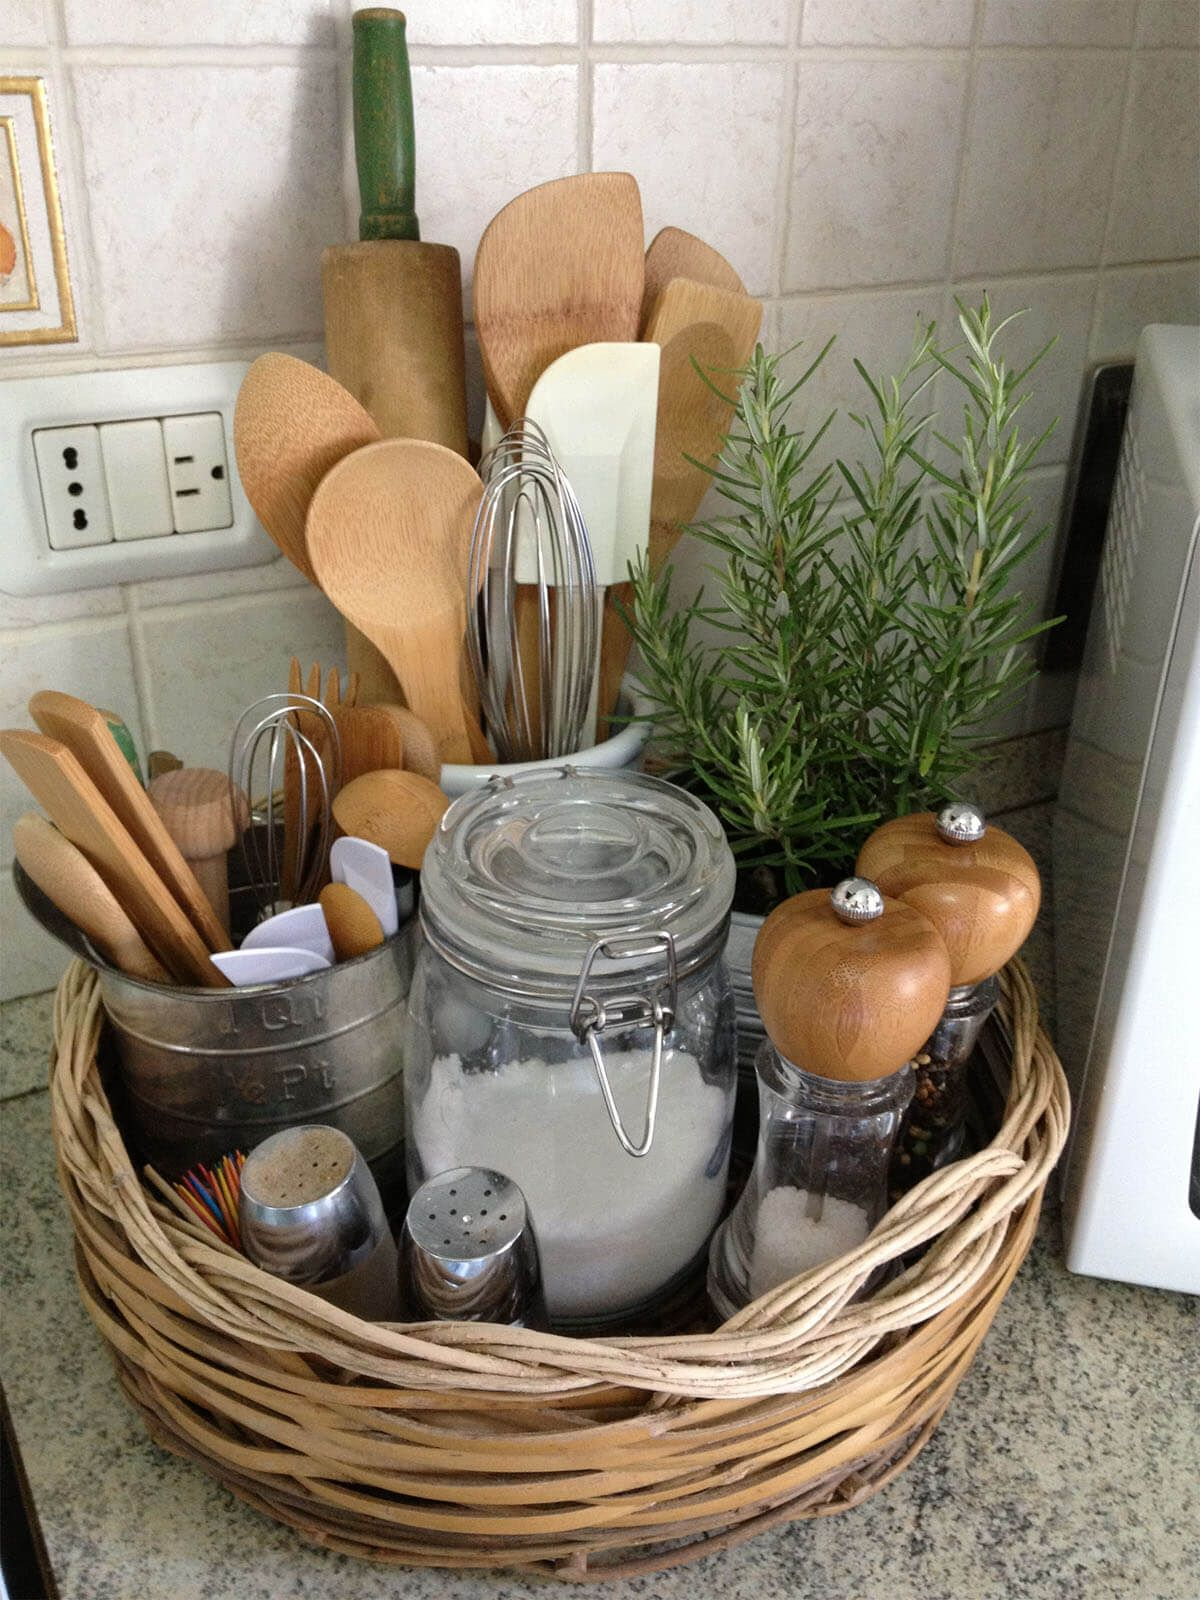 35 Practical Storage Ideas For A Small Kitchen Organization ... on